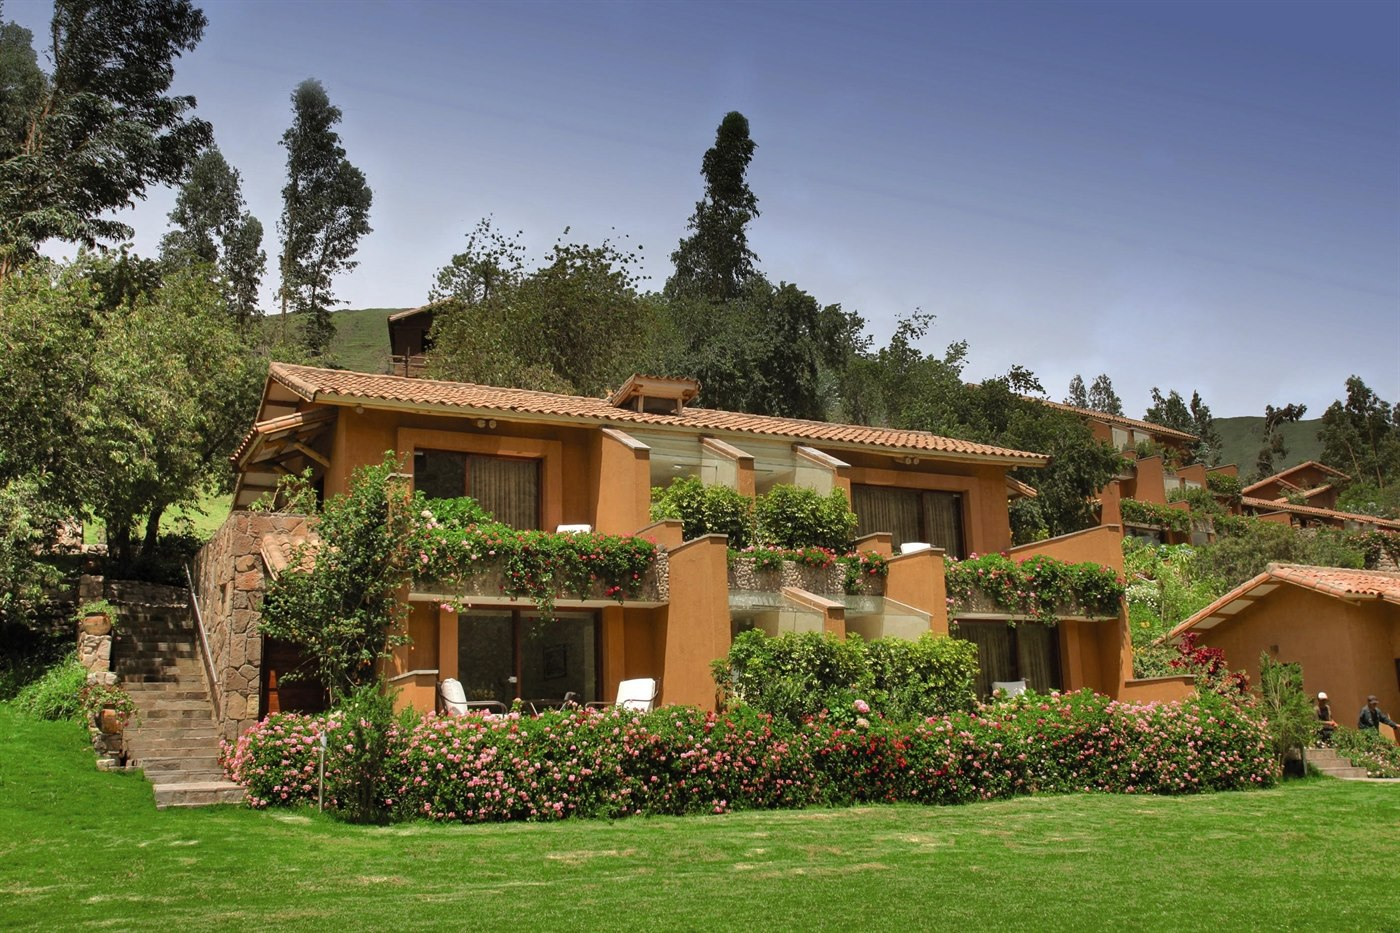 Exterior Accommodation, Belmond Hotel Rio Sagrado